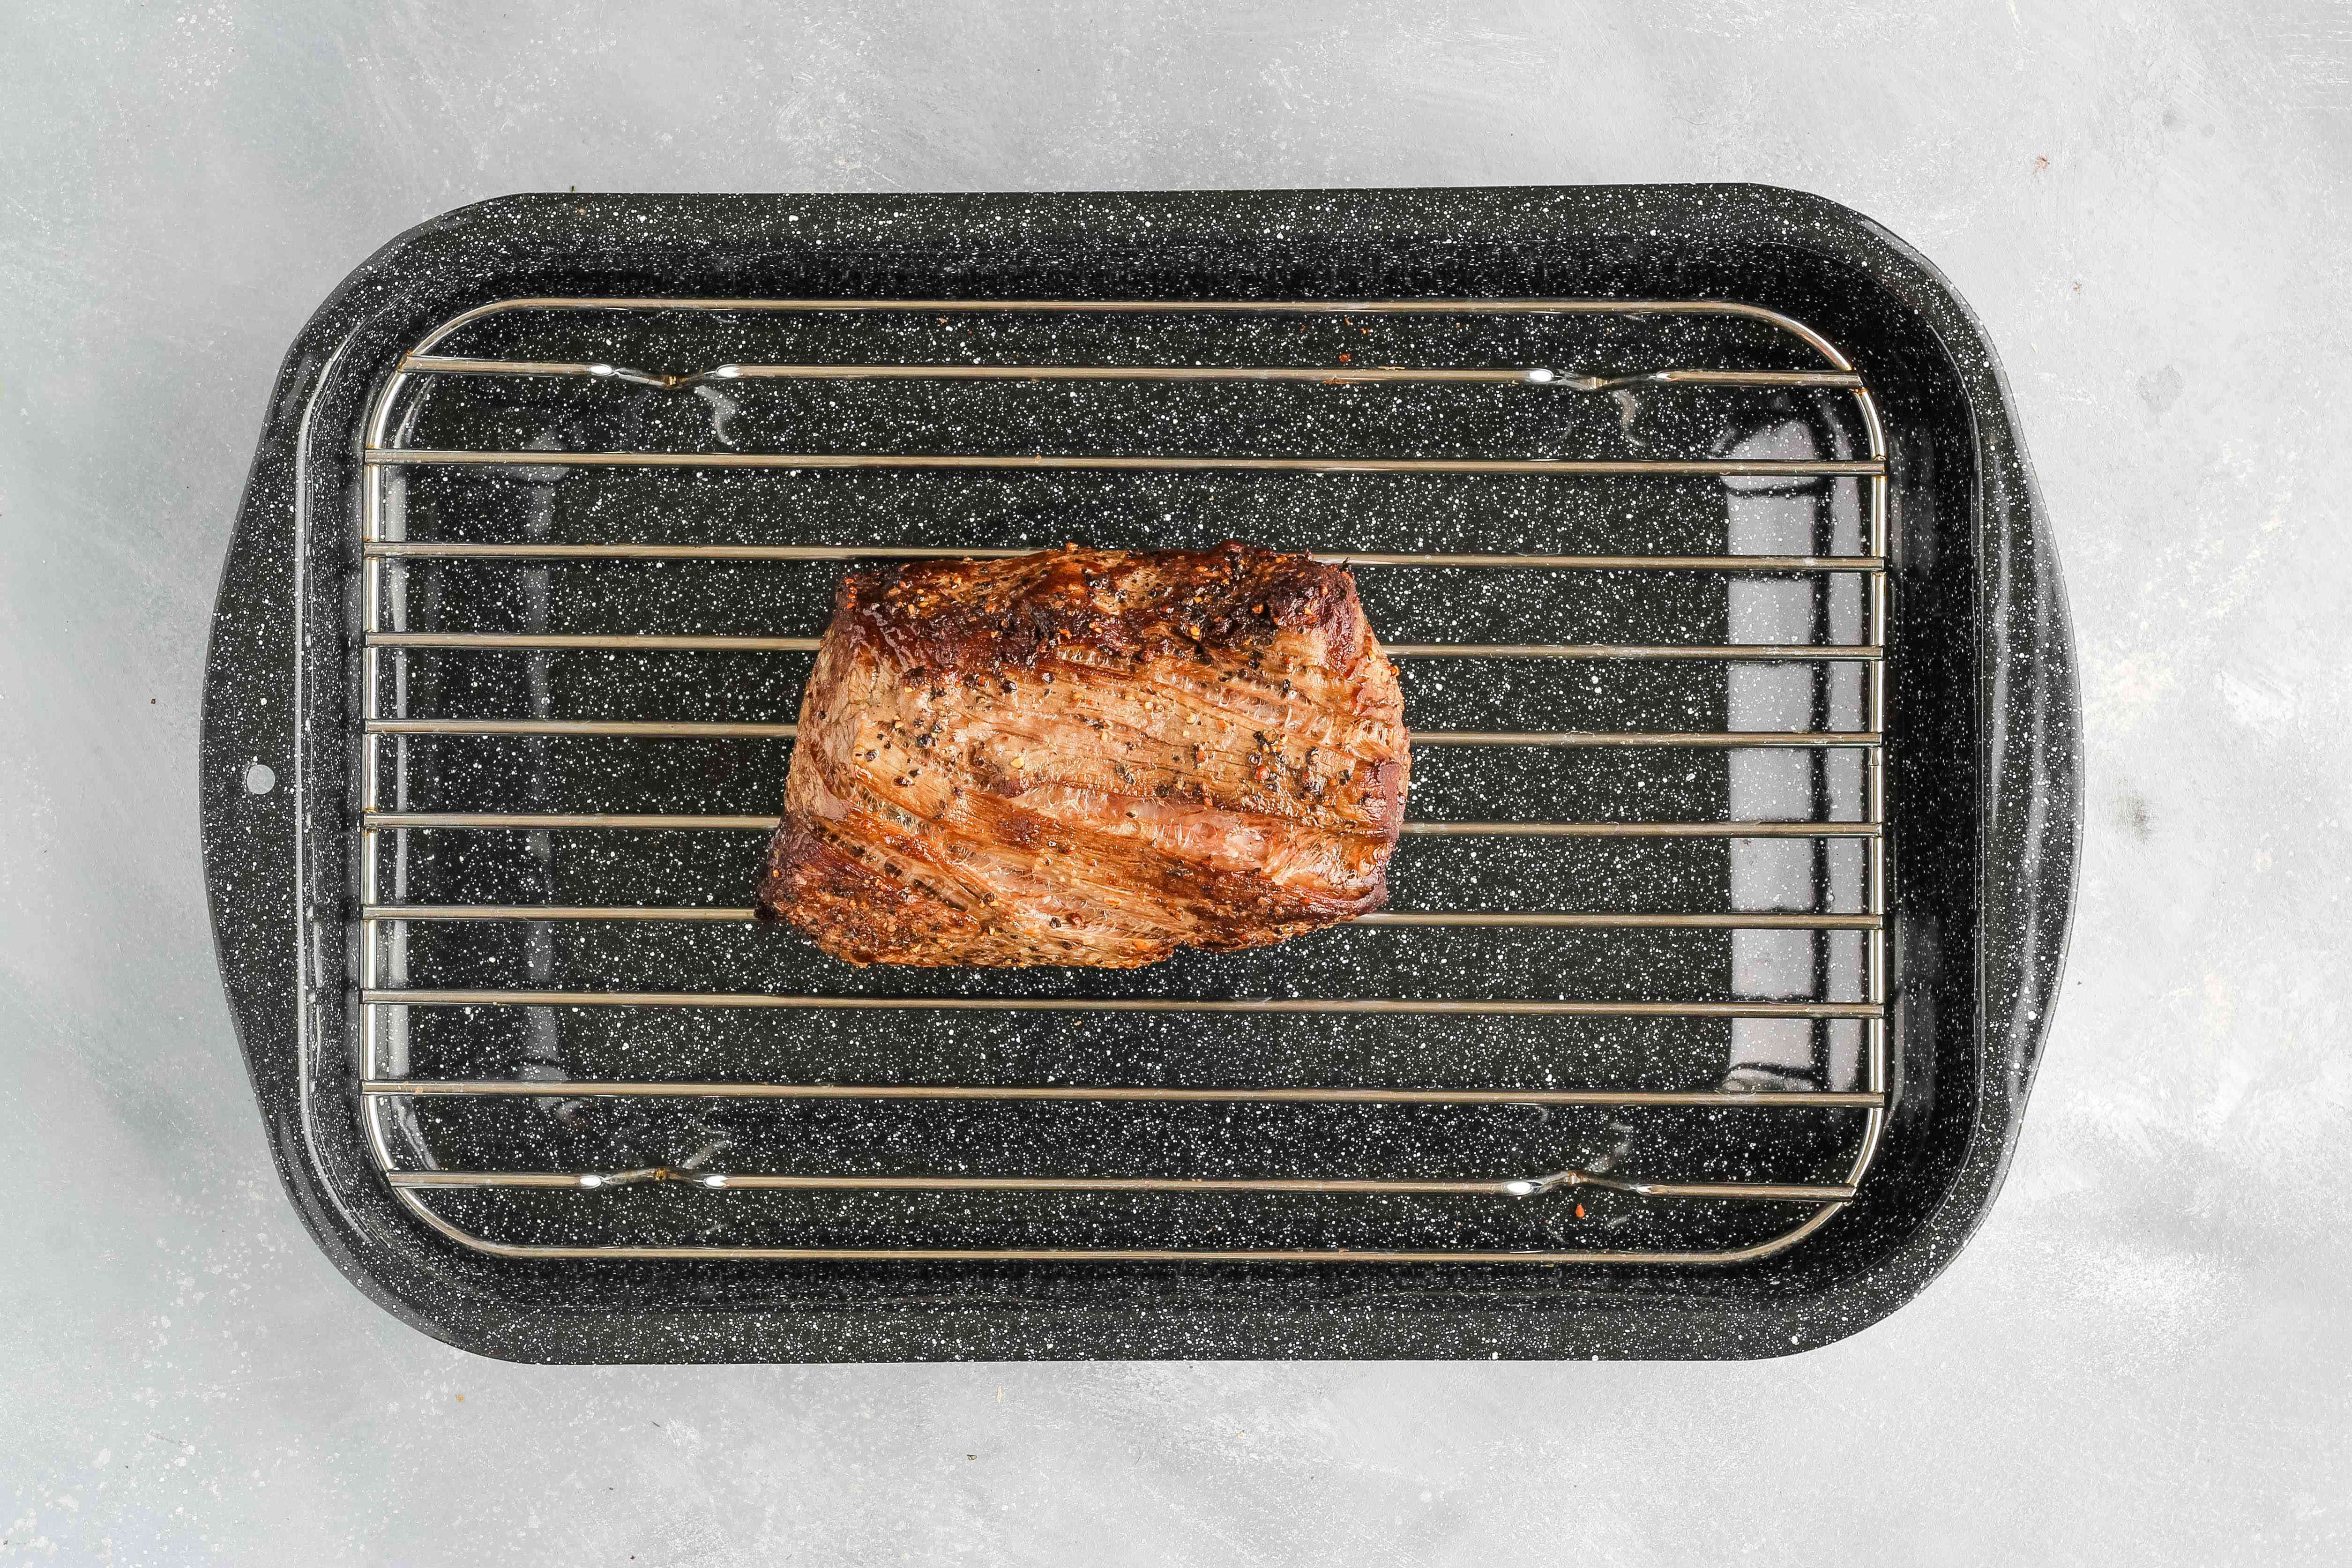 The tenderloin rests on a rack over a roasting pan